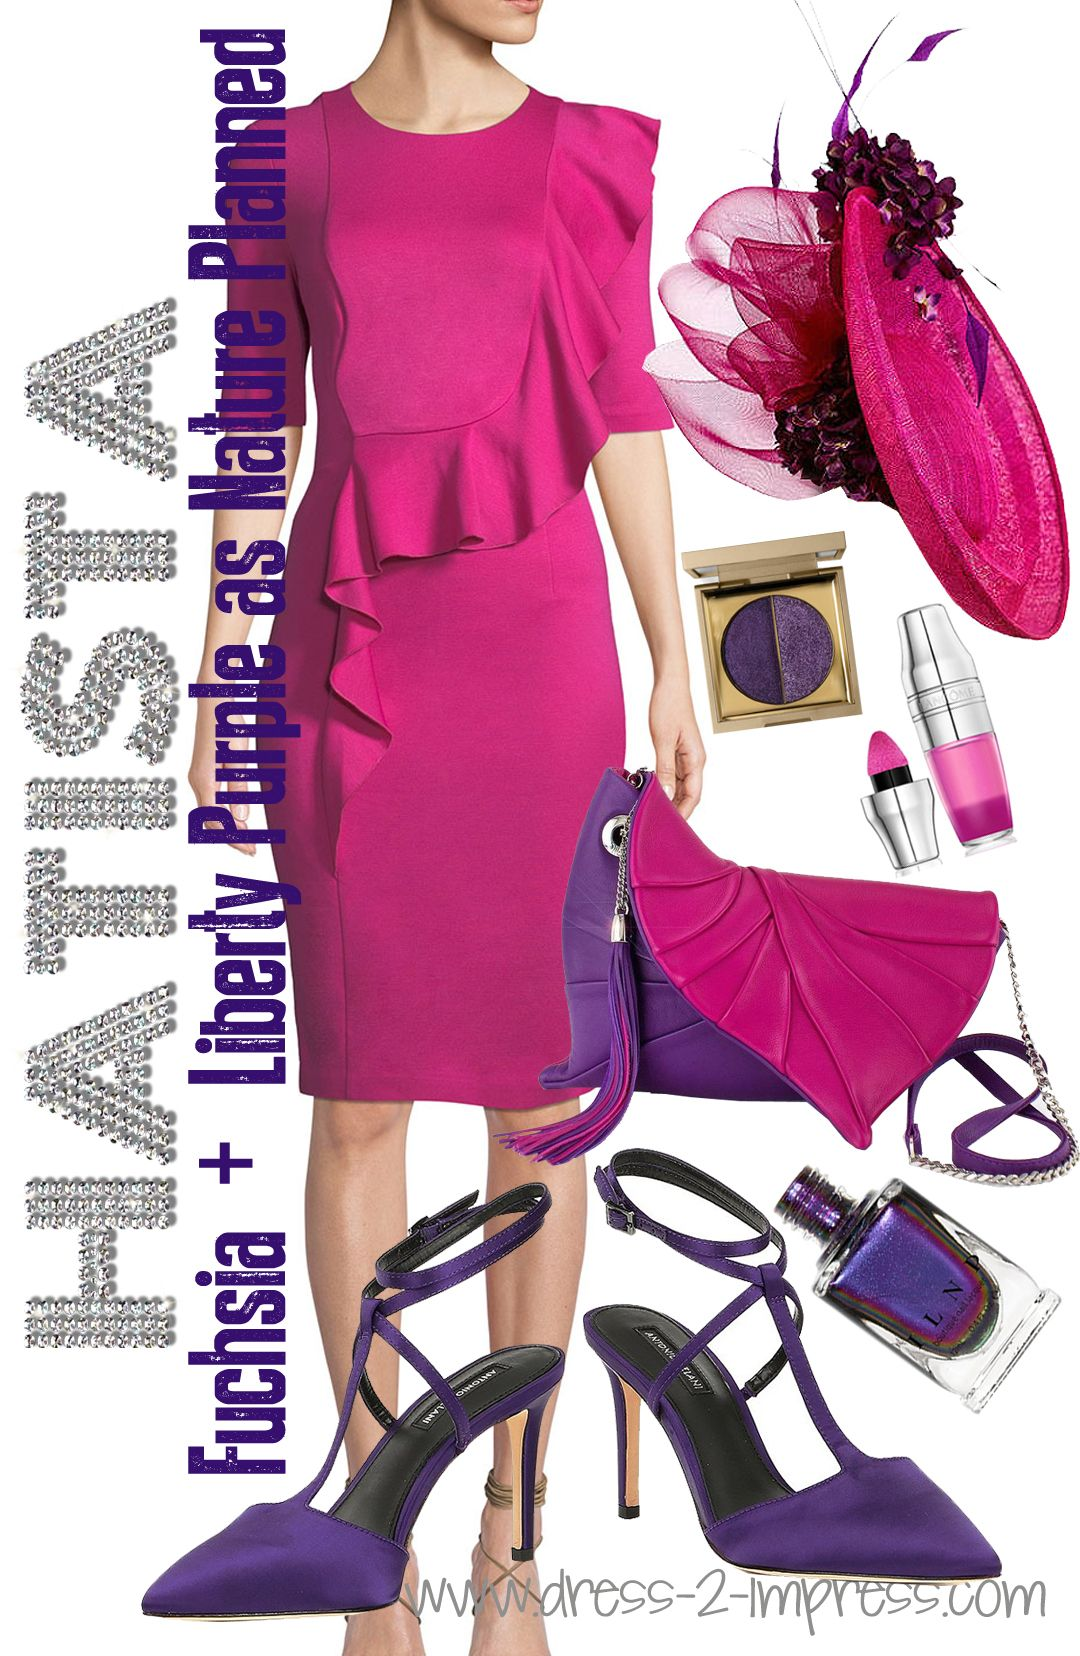 Kentucky Derby 2020 Fashion.Looking For Color Combo Inspiration Outfit Ideas For The